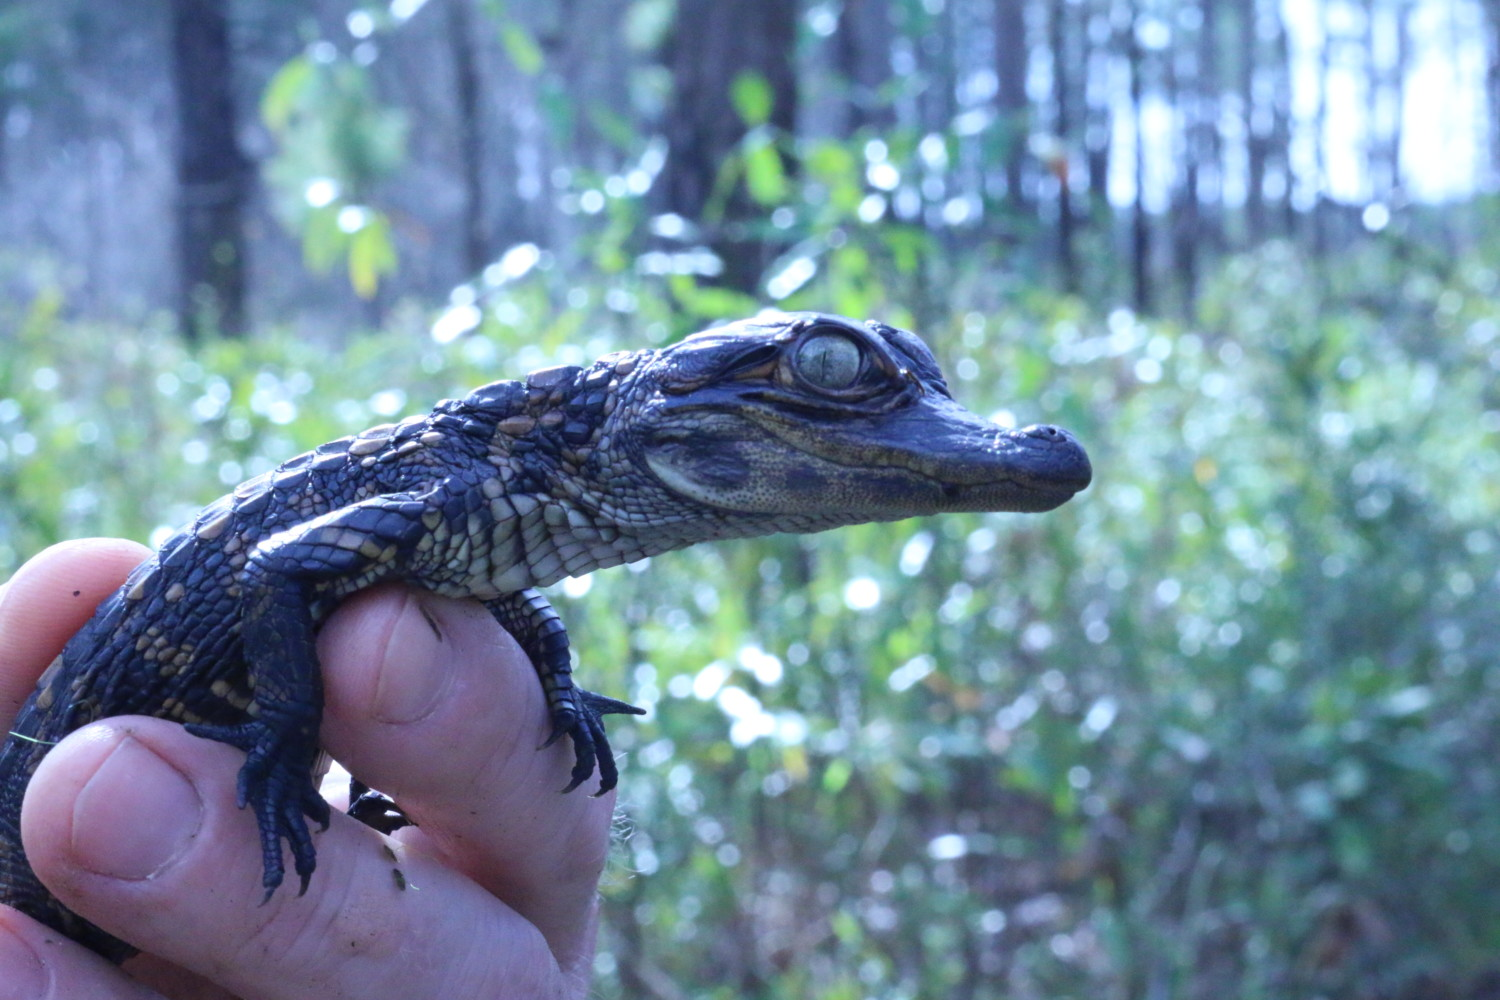 American alligator - Wikipedia